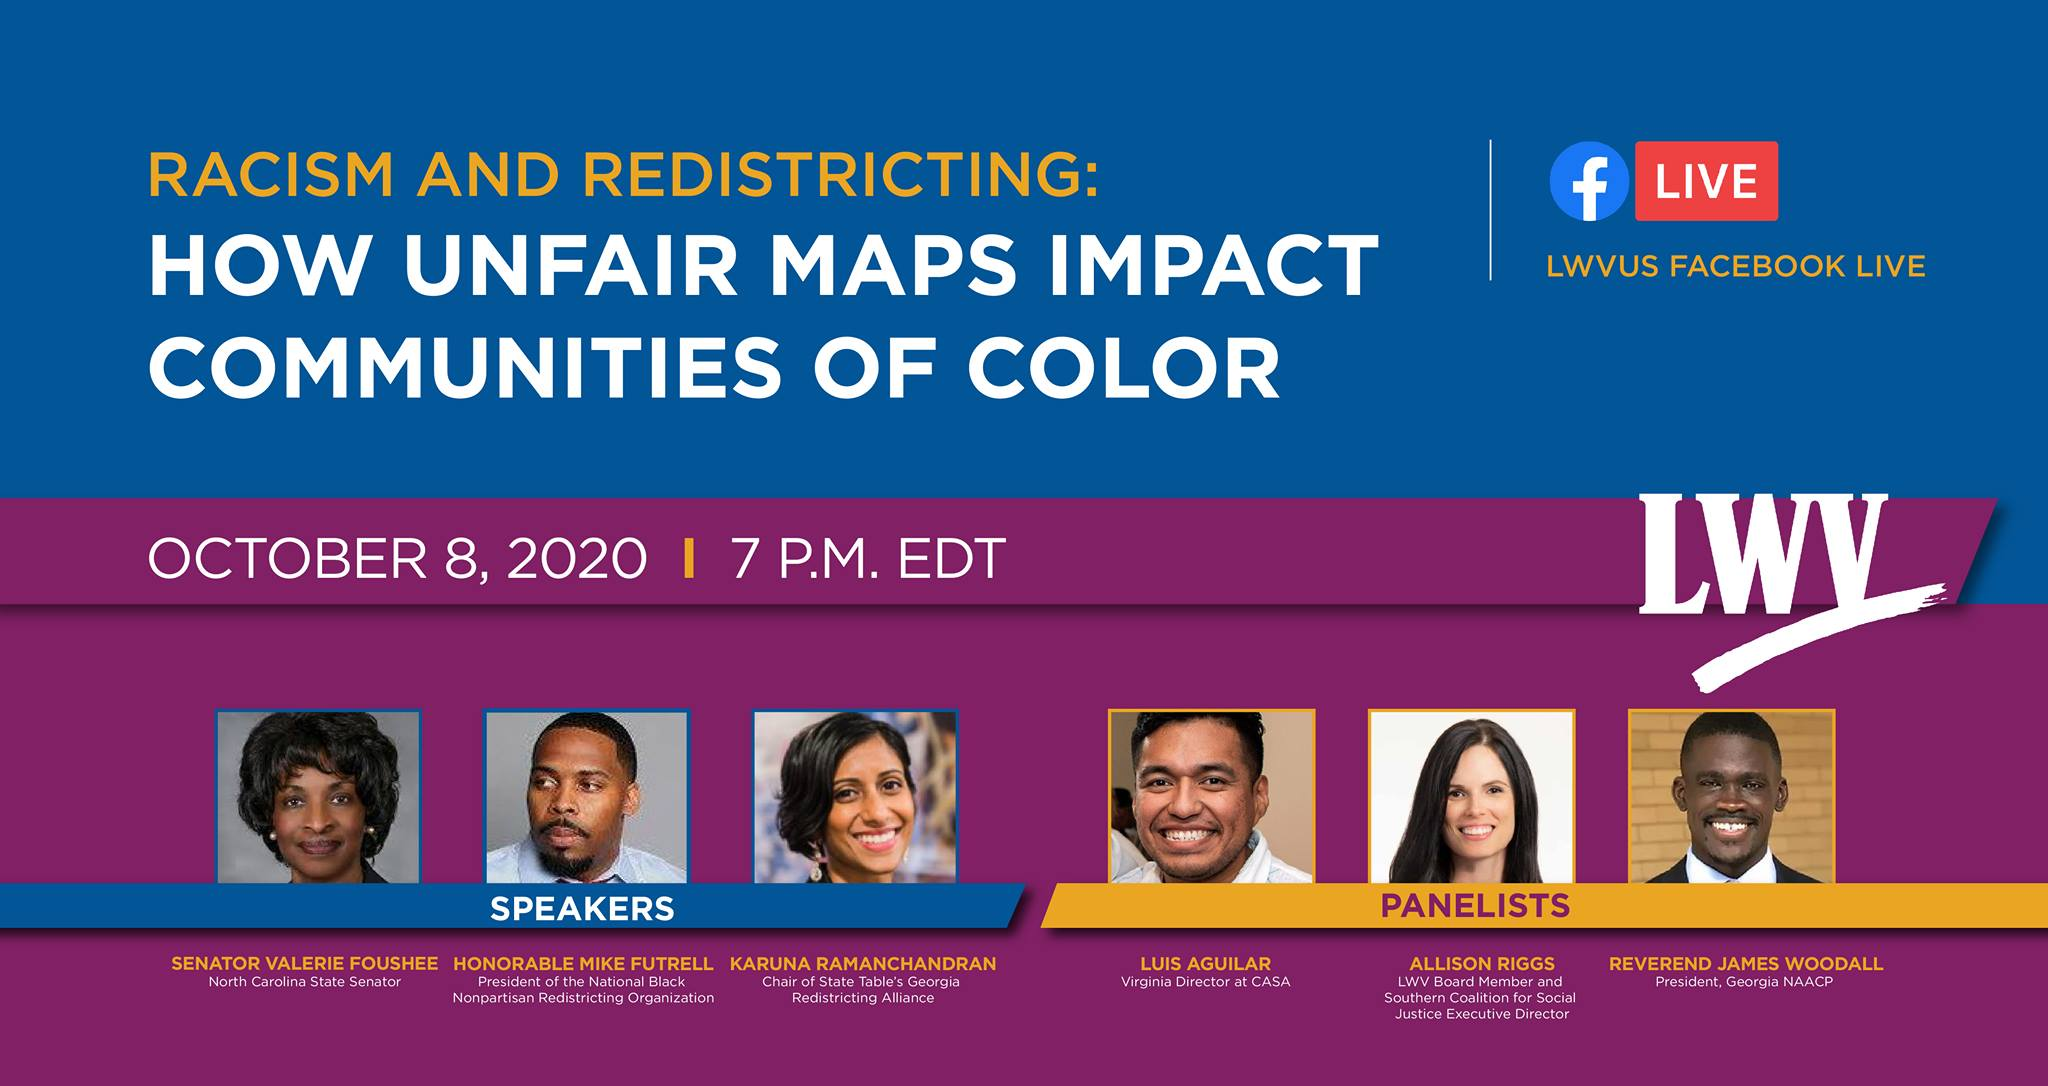 Racism and Redistricting event